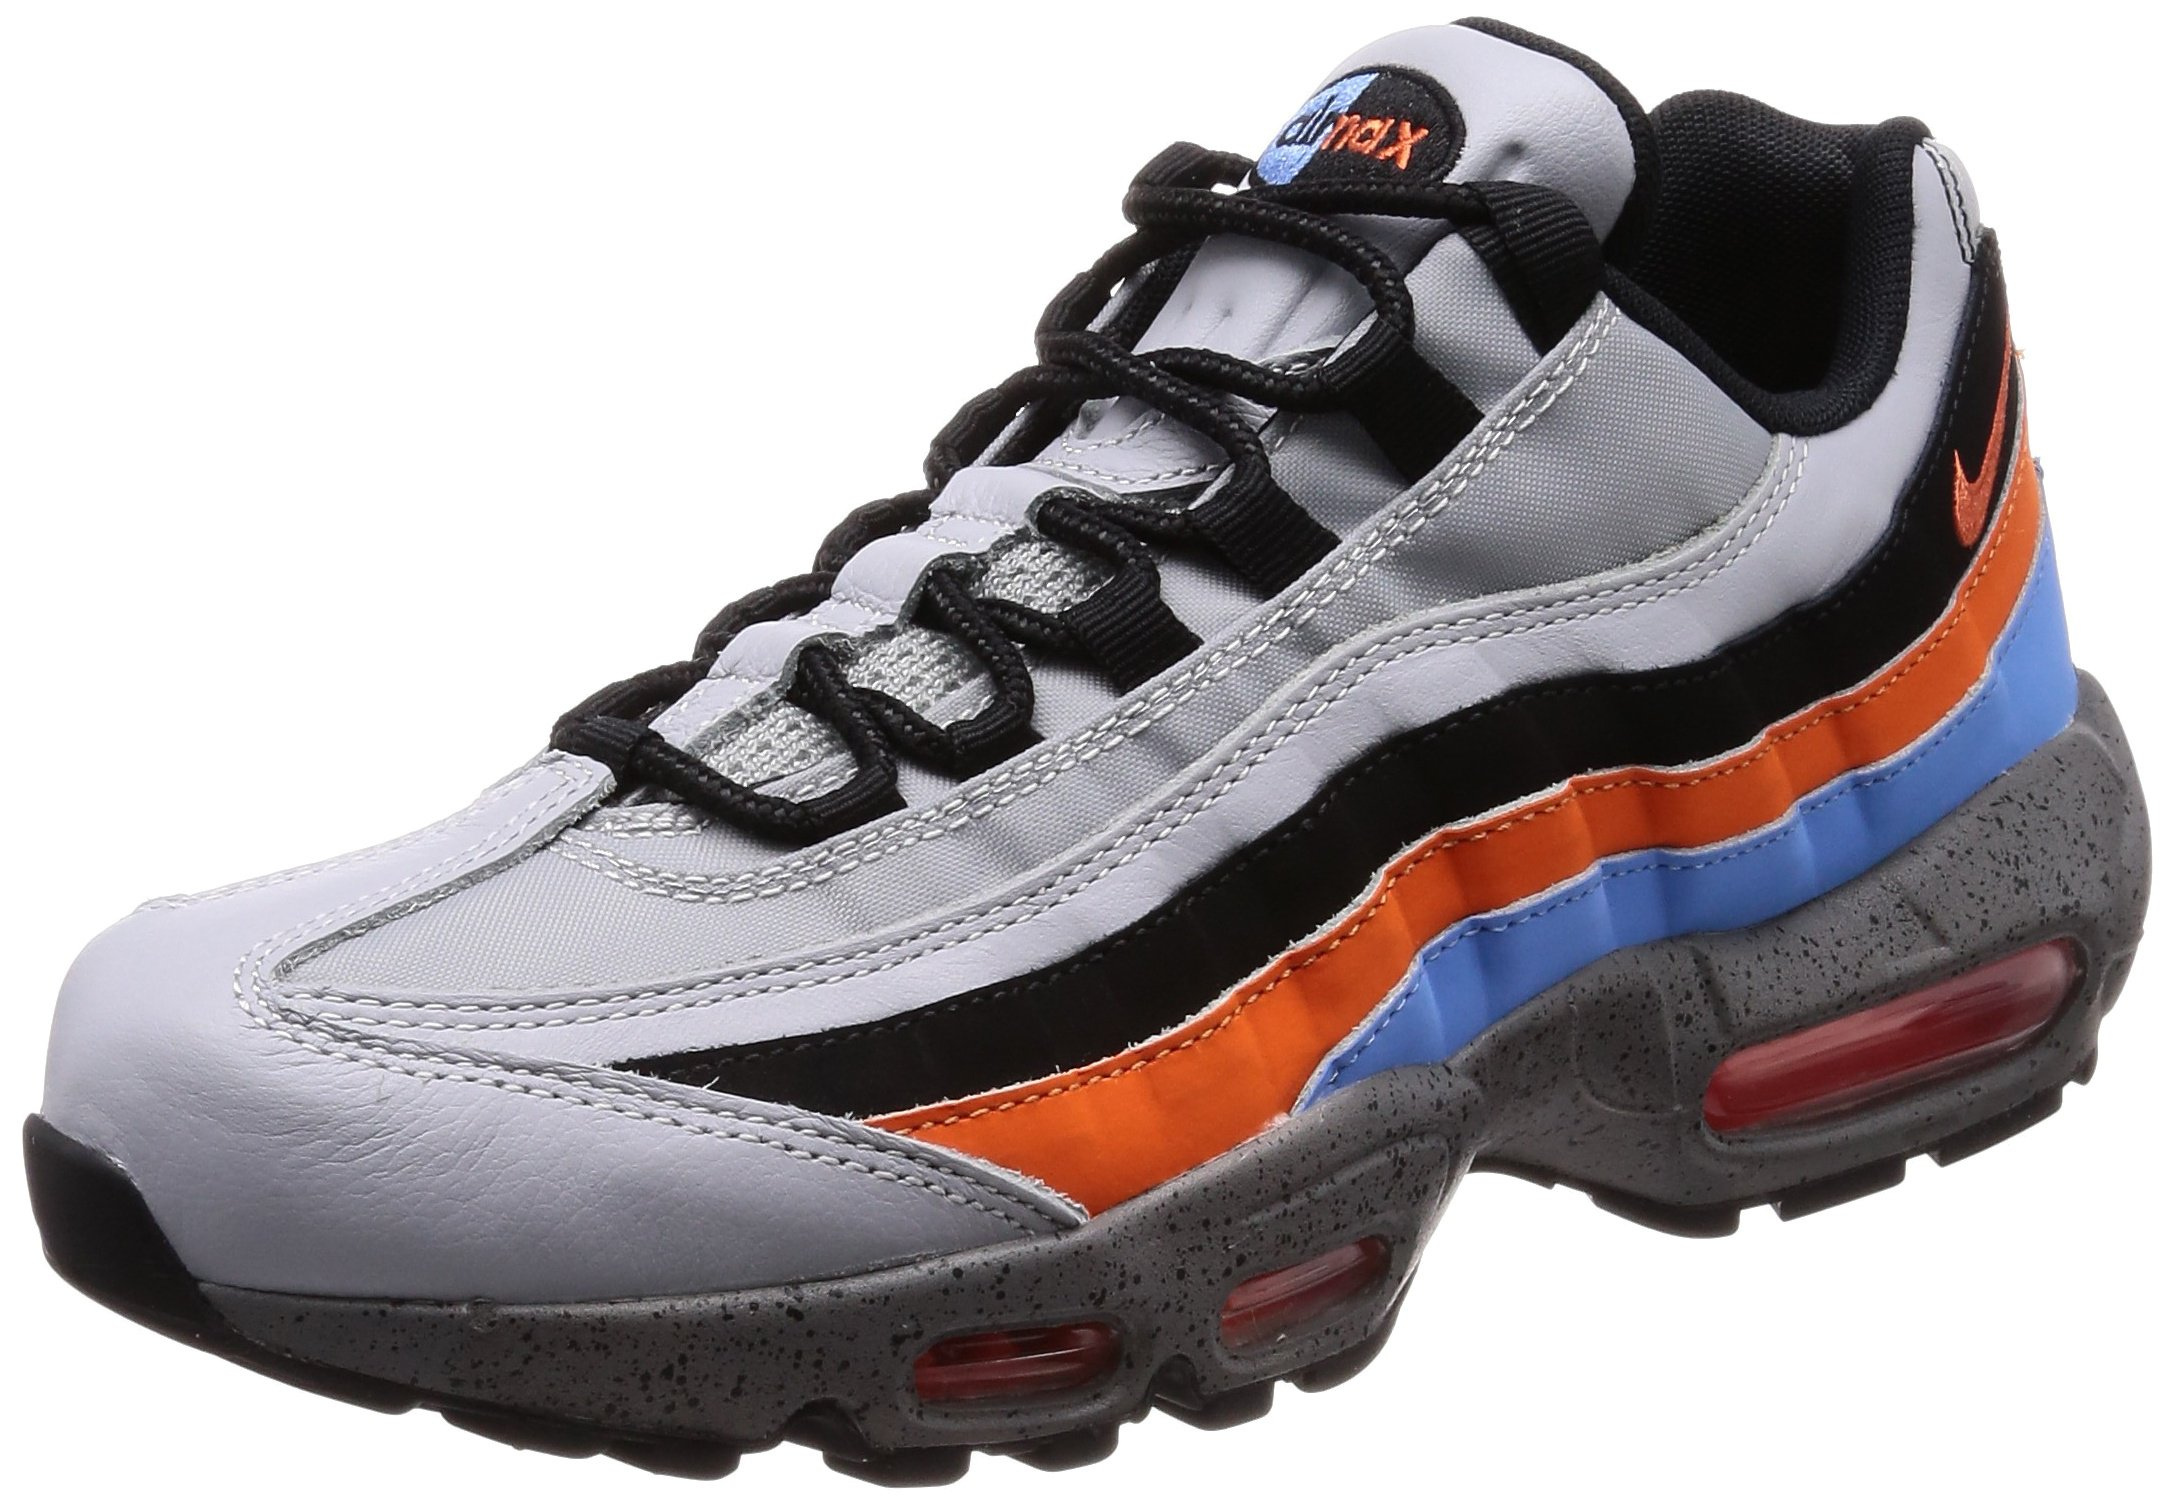 fba51ee44b31d Galleon - NIKE Air Max 95 PRM (10